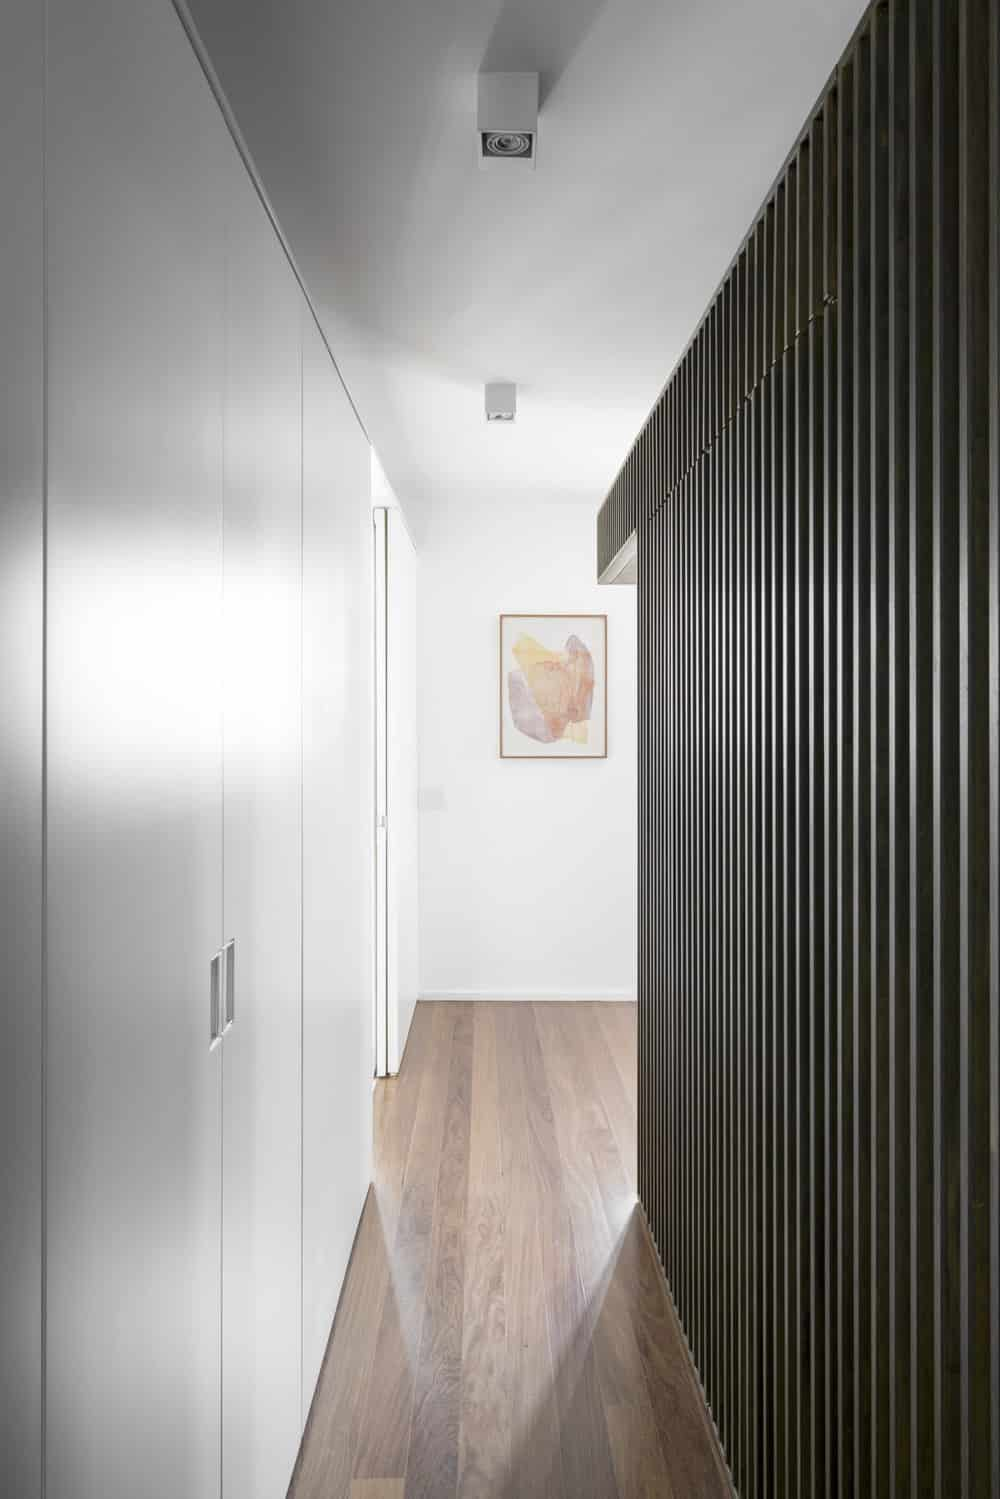 This is a hallway with white built-in cabinets on one side and dark wooden slats on the other.